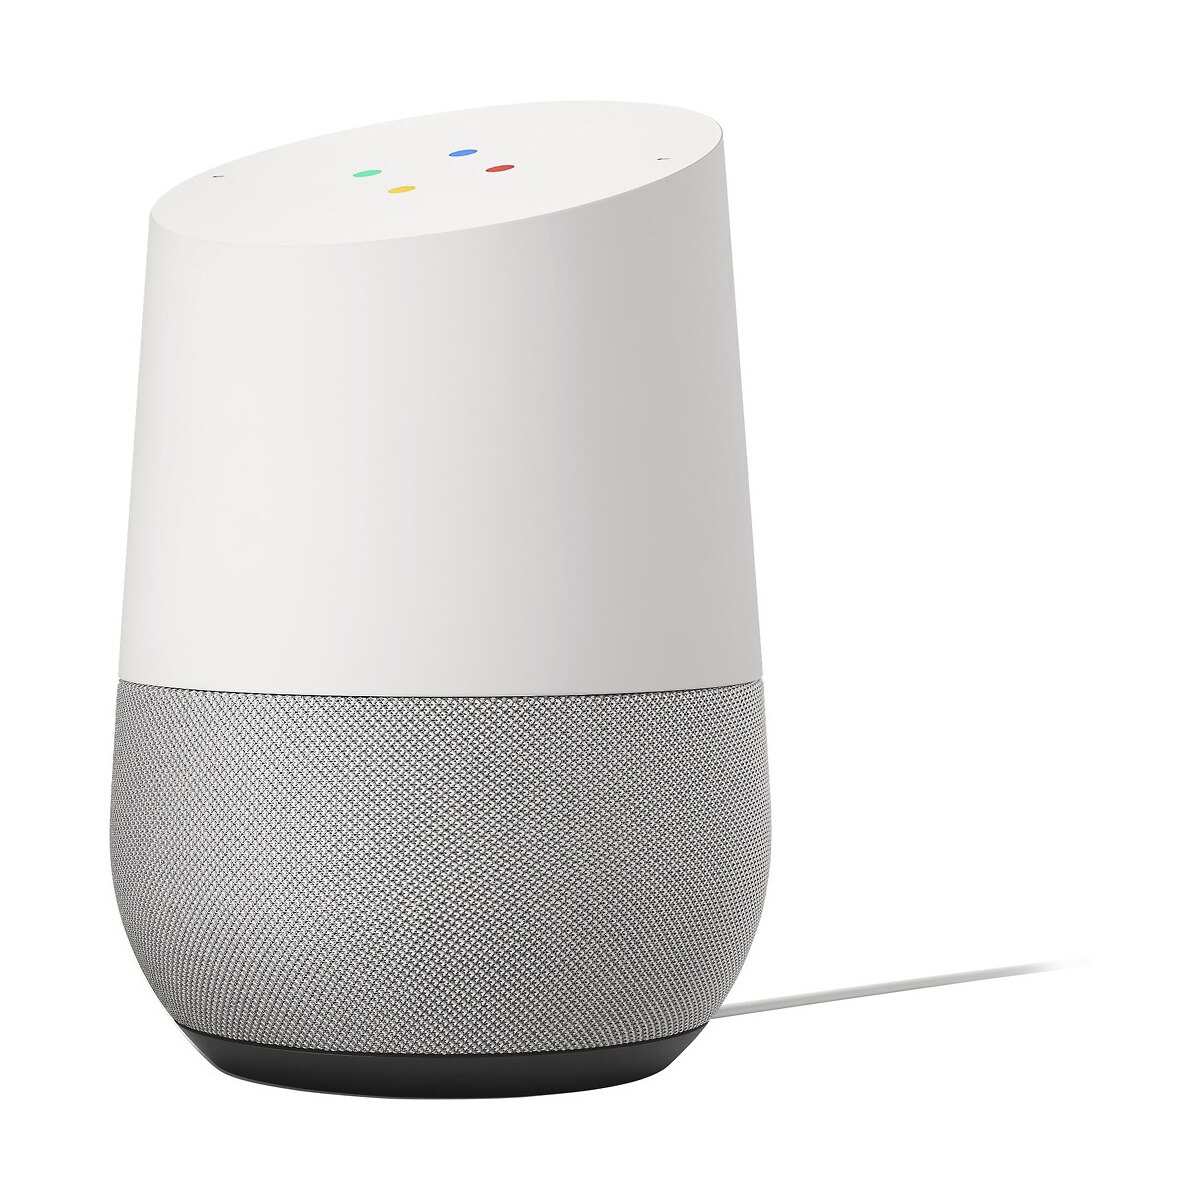 Google Home Hands-Free Smart Speaker and Voice Controlled Home Assistant - White 0